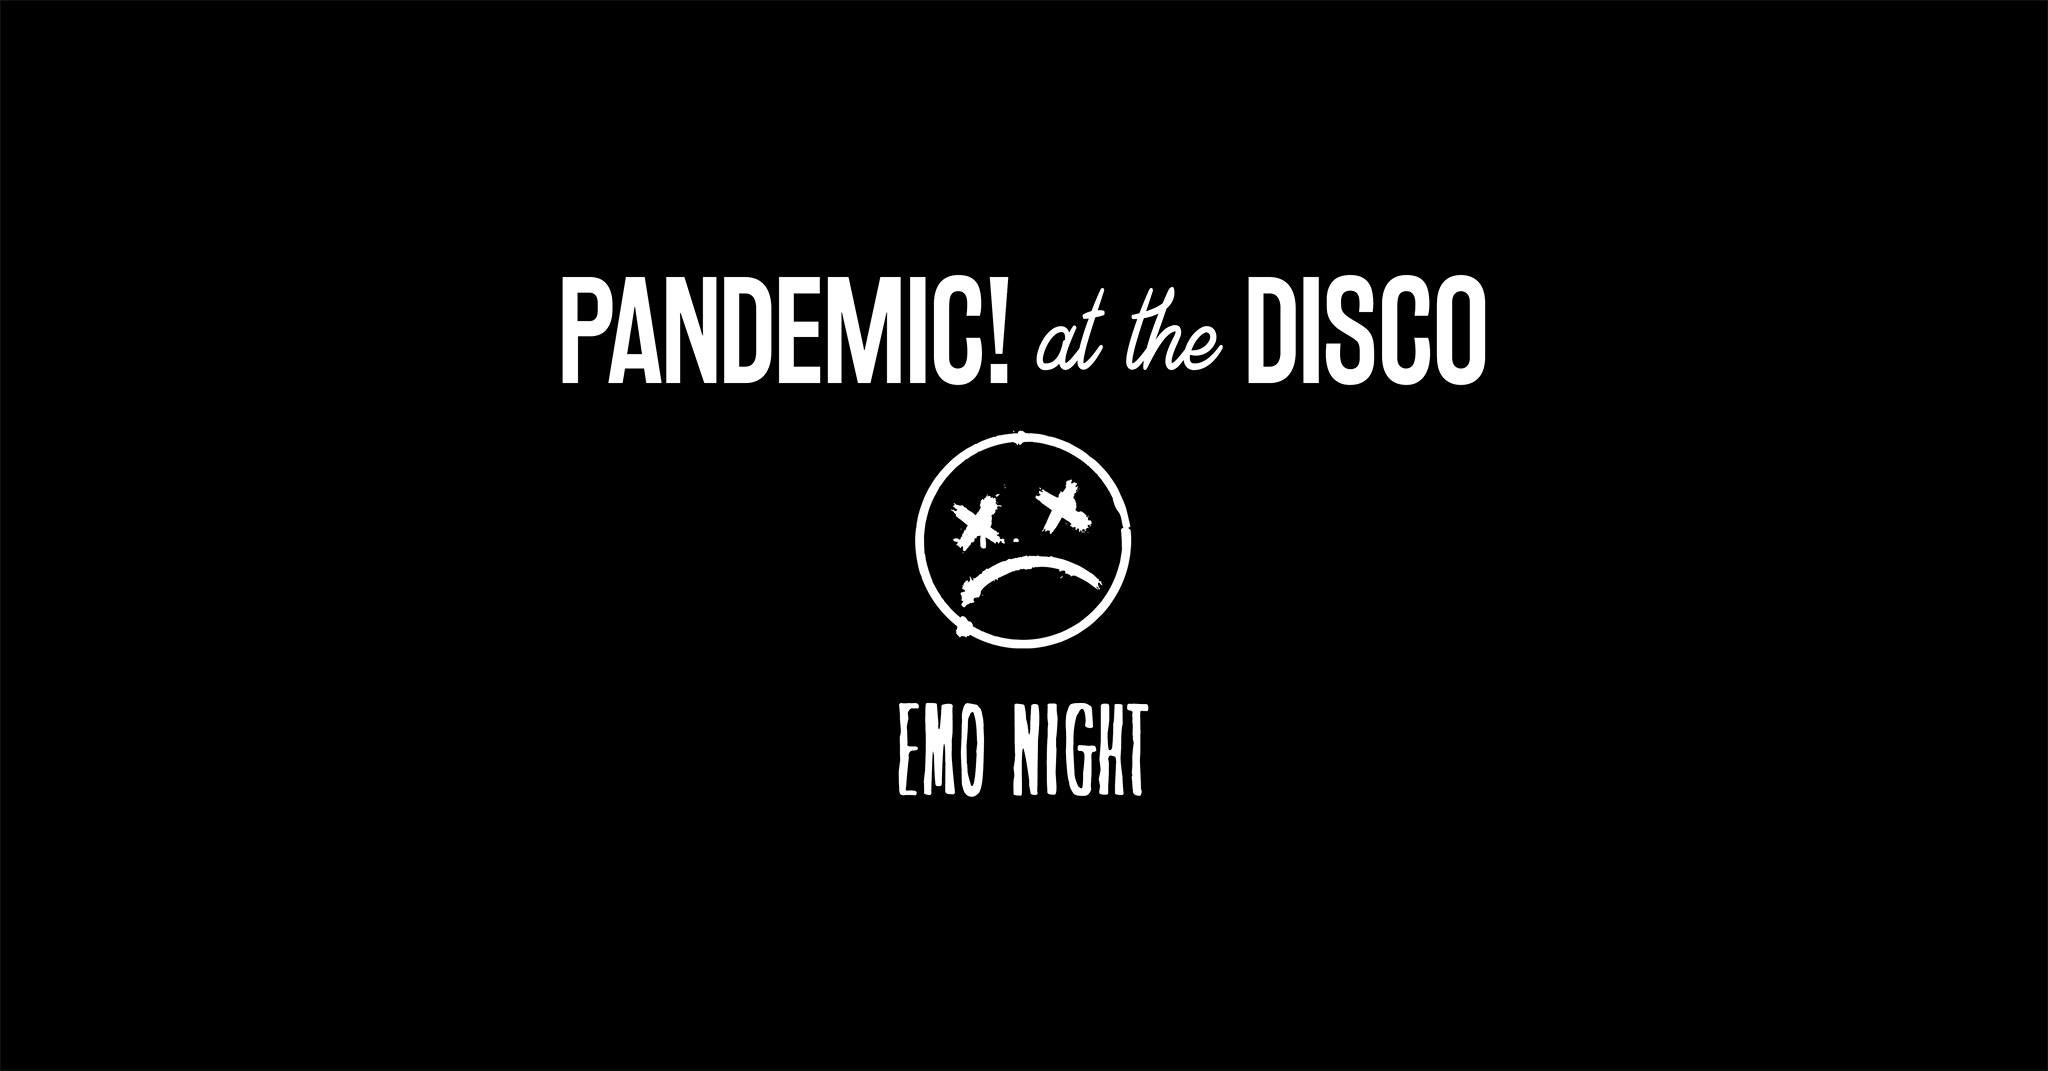 PANDEMIC AT THE DISCO # 3